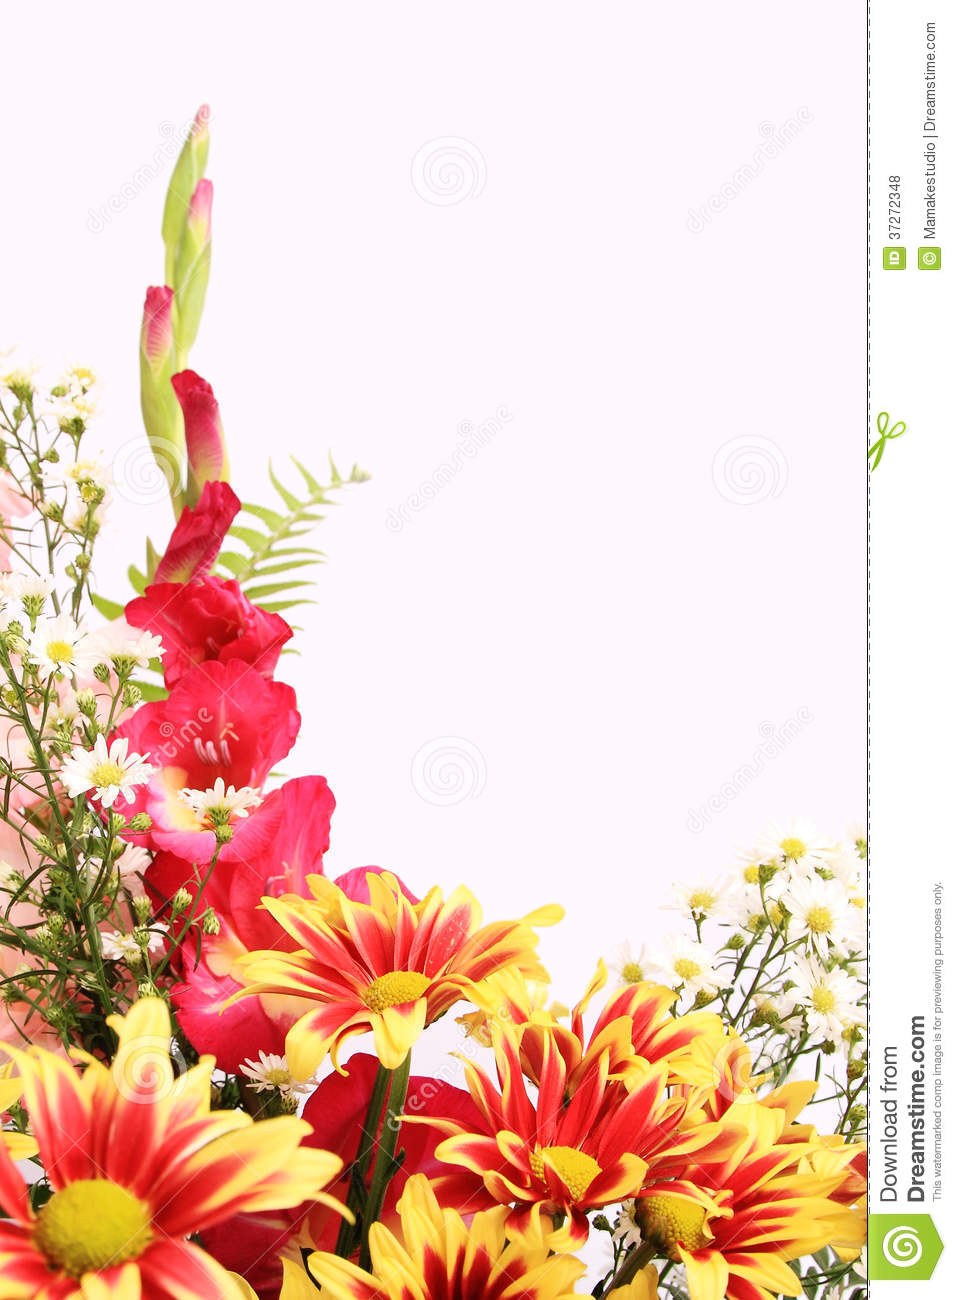 Flower background stock photo image of frame nature for Plans for a flower garden layout